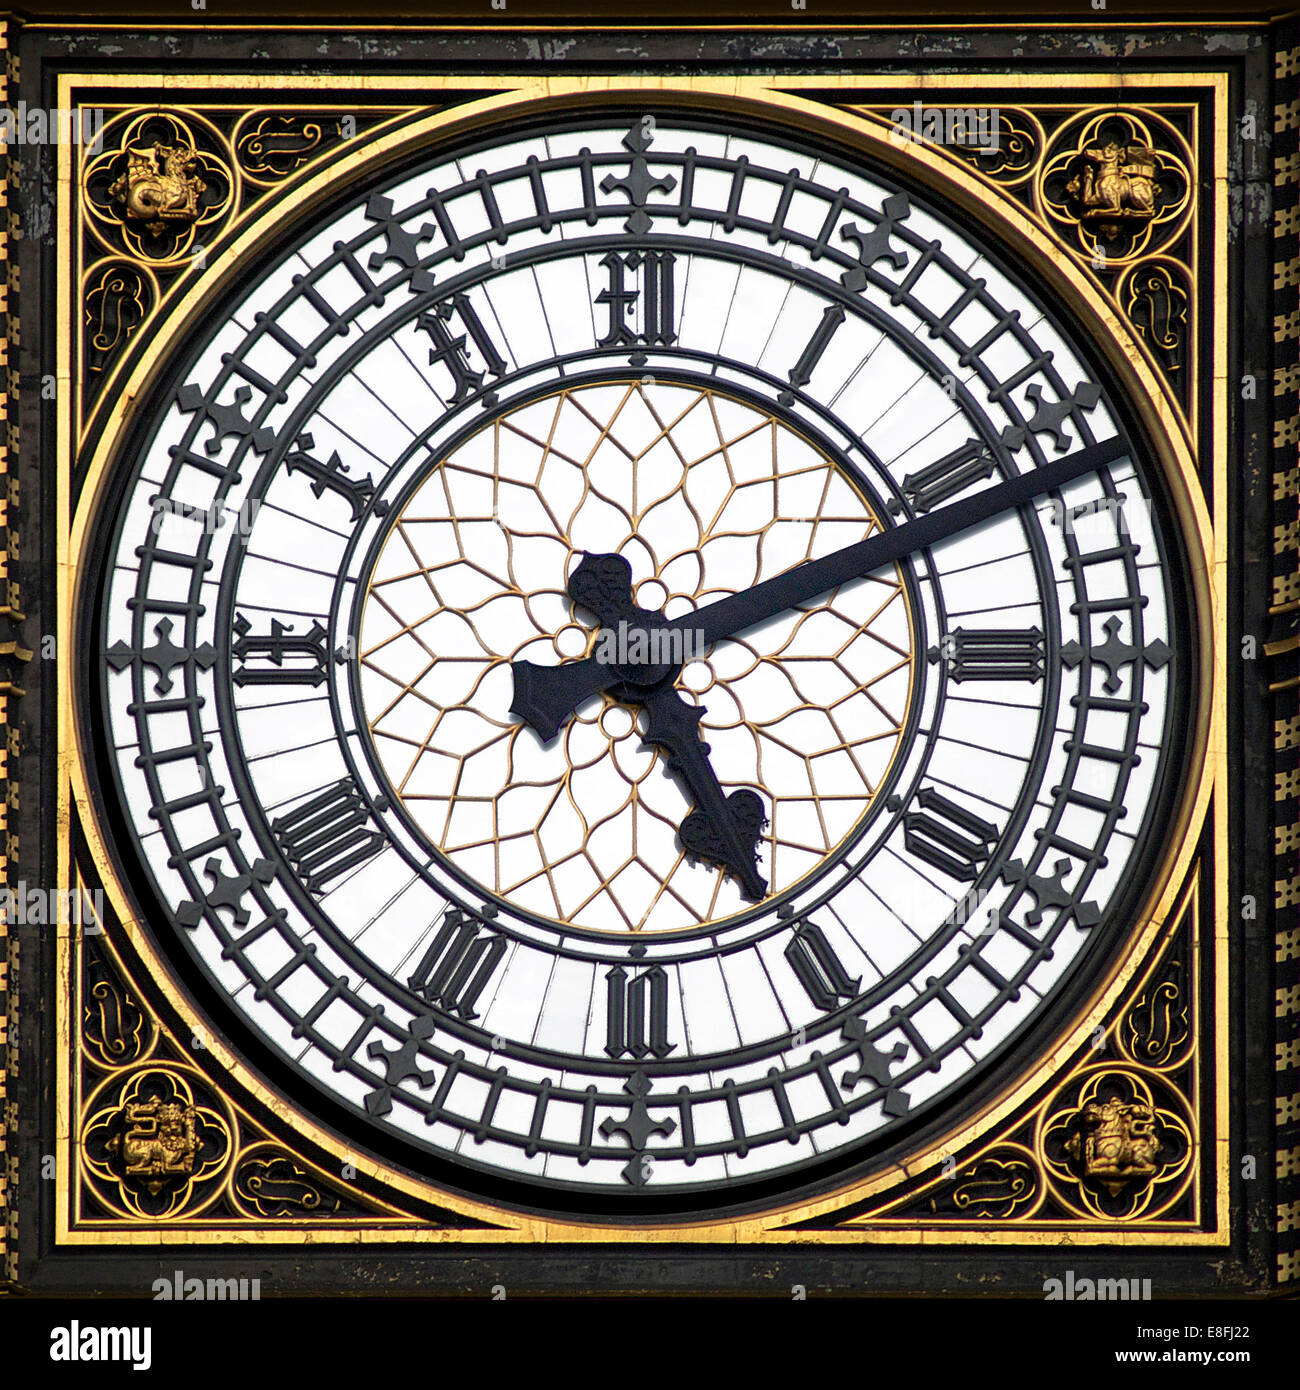 Big Ben clock face, London, England, UK - Stock Image